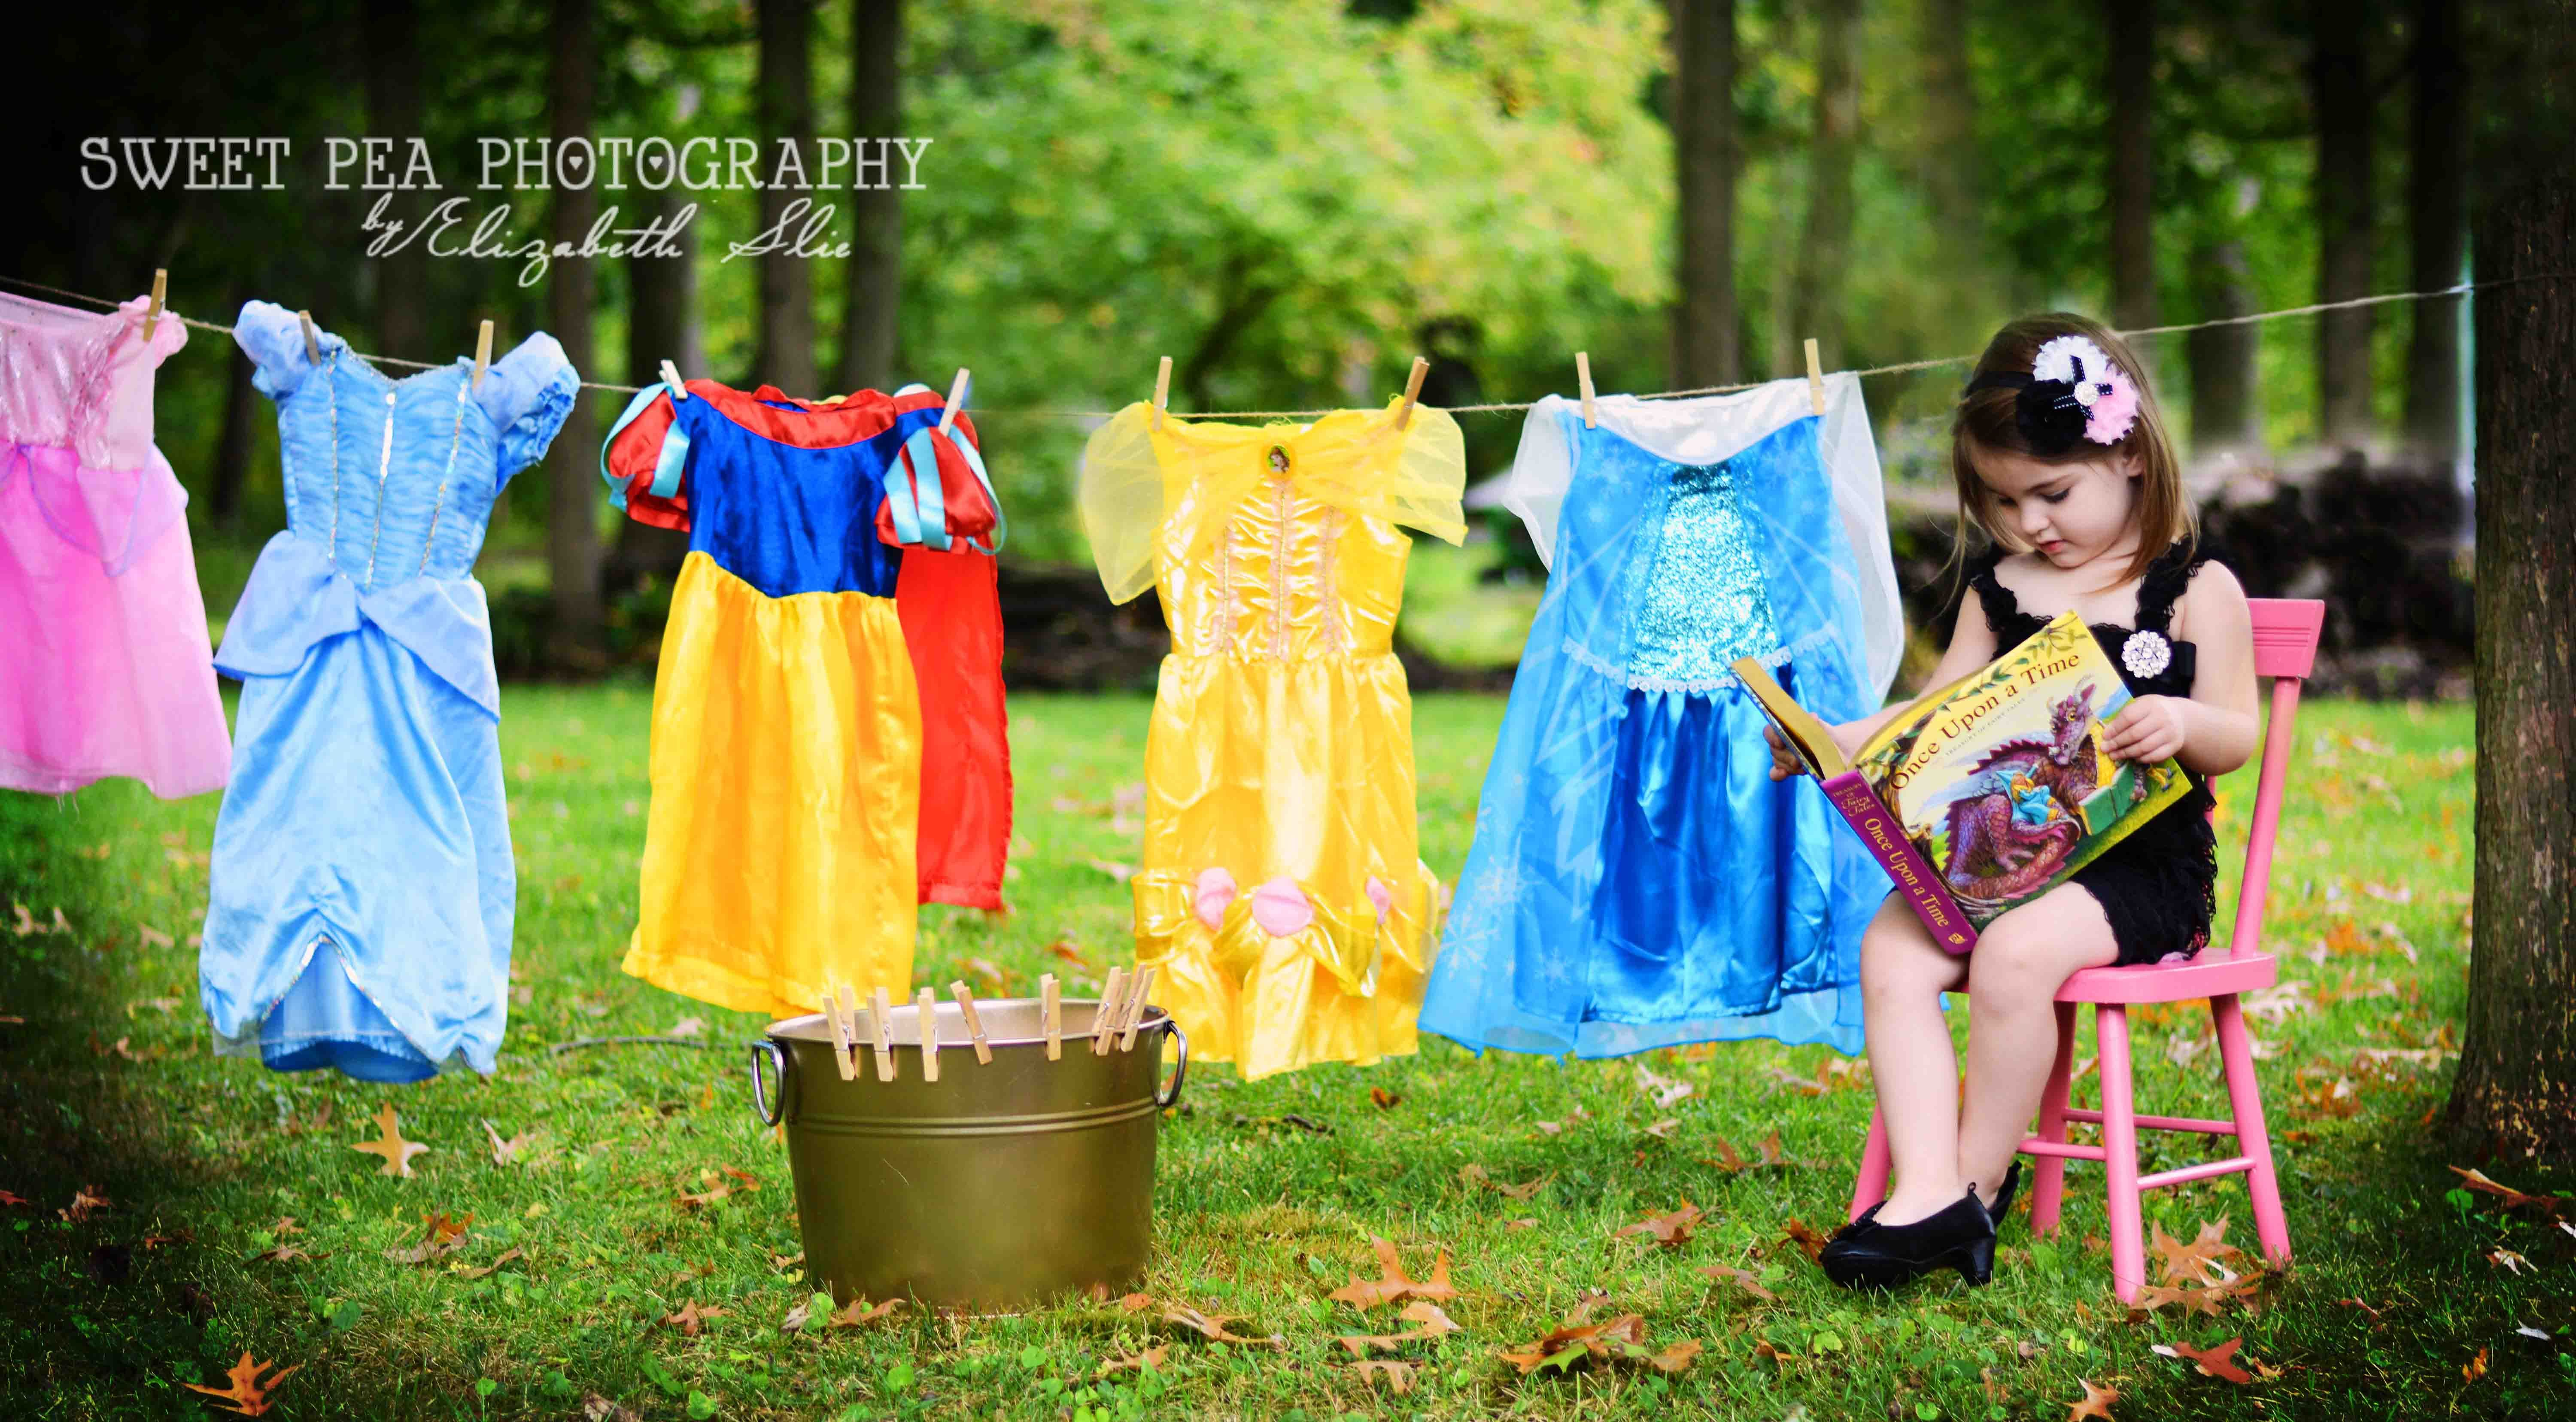 Disney Princess on laundry day clothes line 3 year old girl